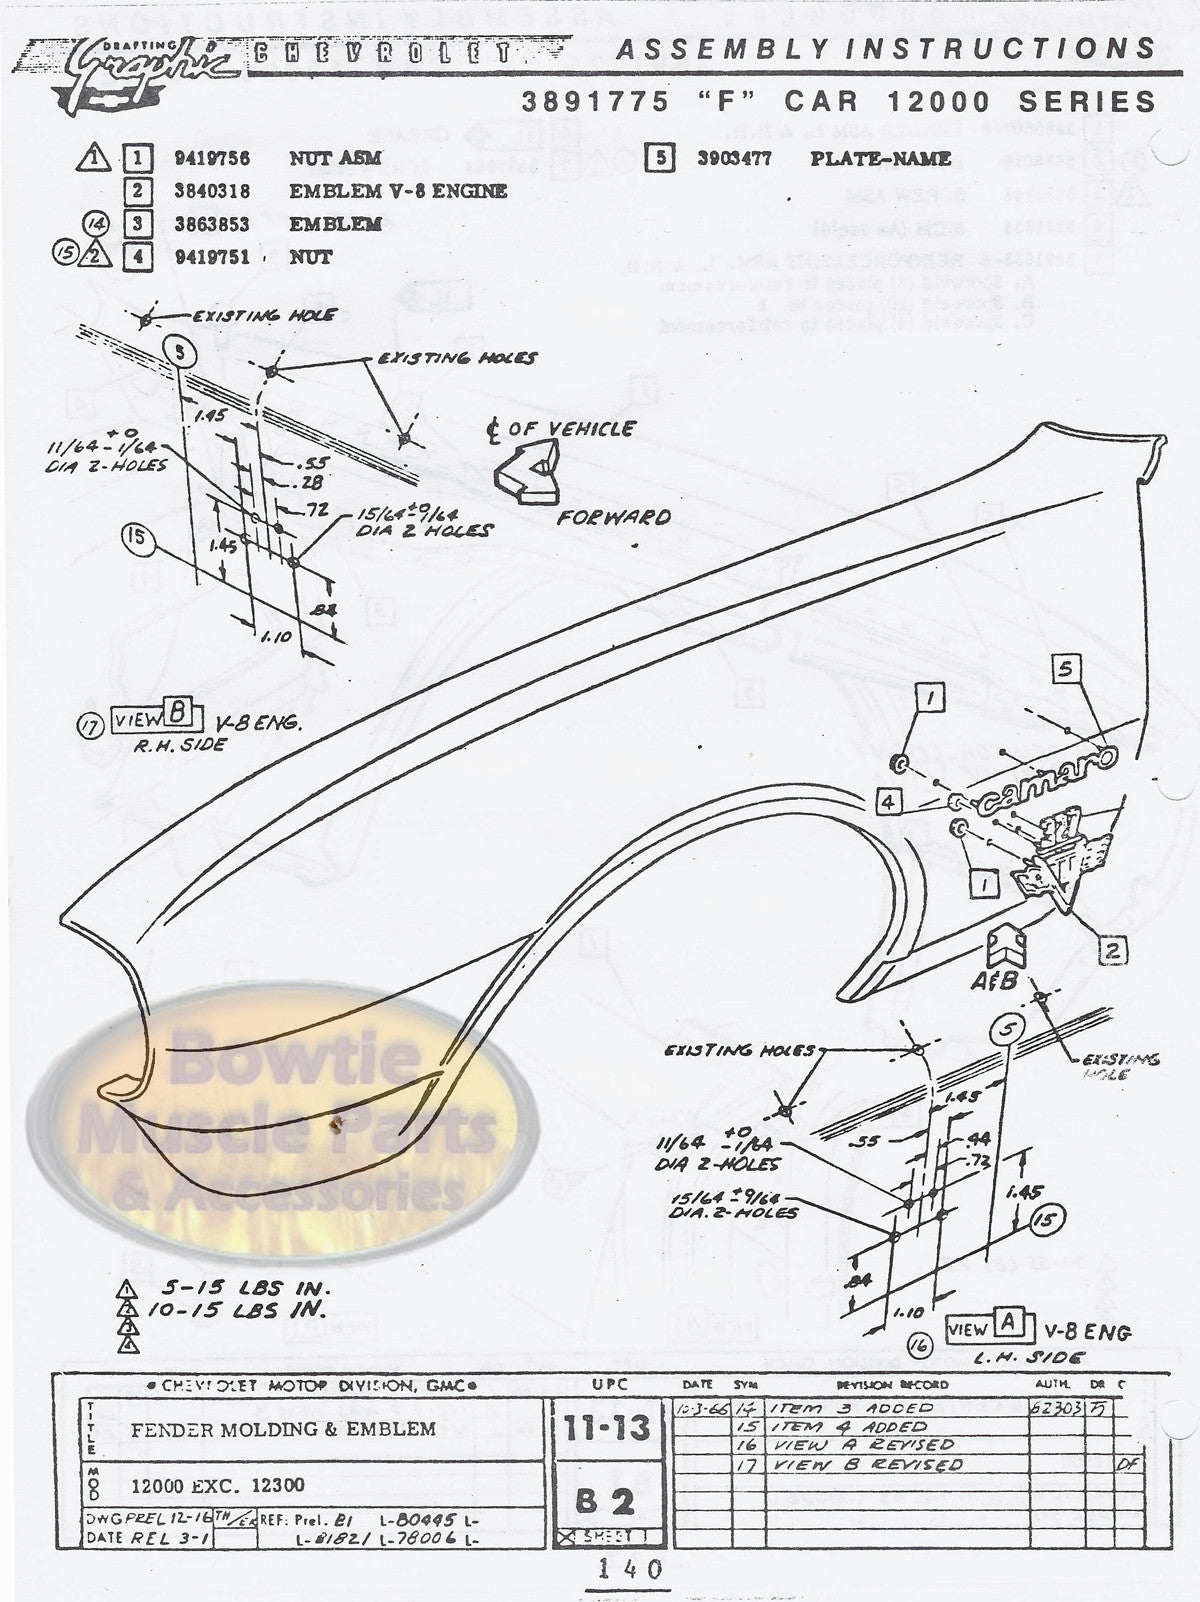 03 Monte Carlo Wiring Diagram Schematic Diagrams 2002 72 Engine Trusted U2022 Chassis